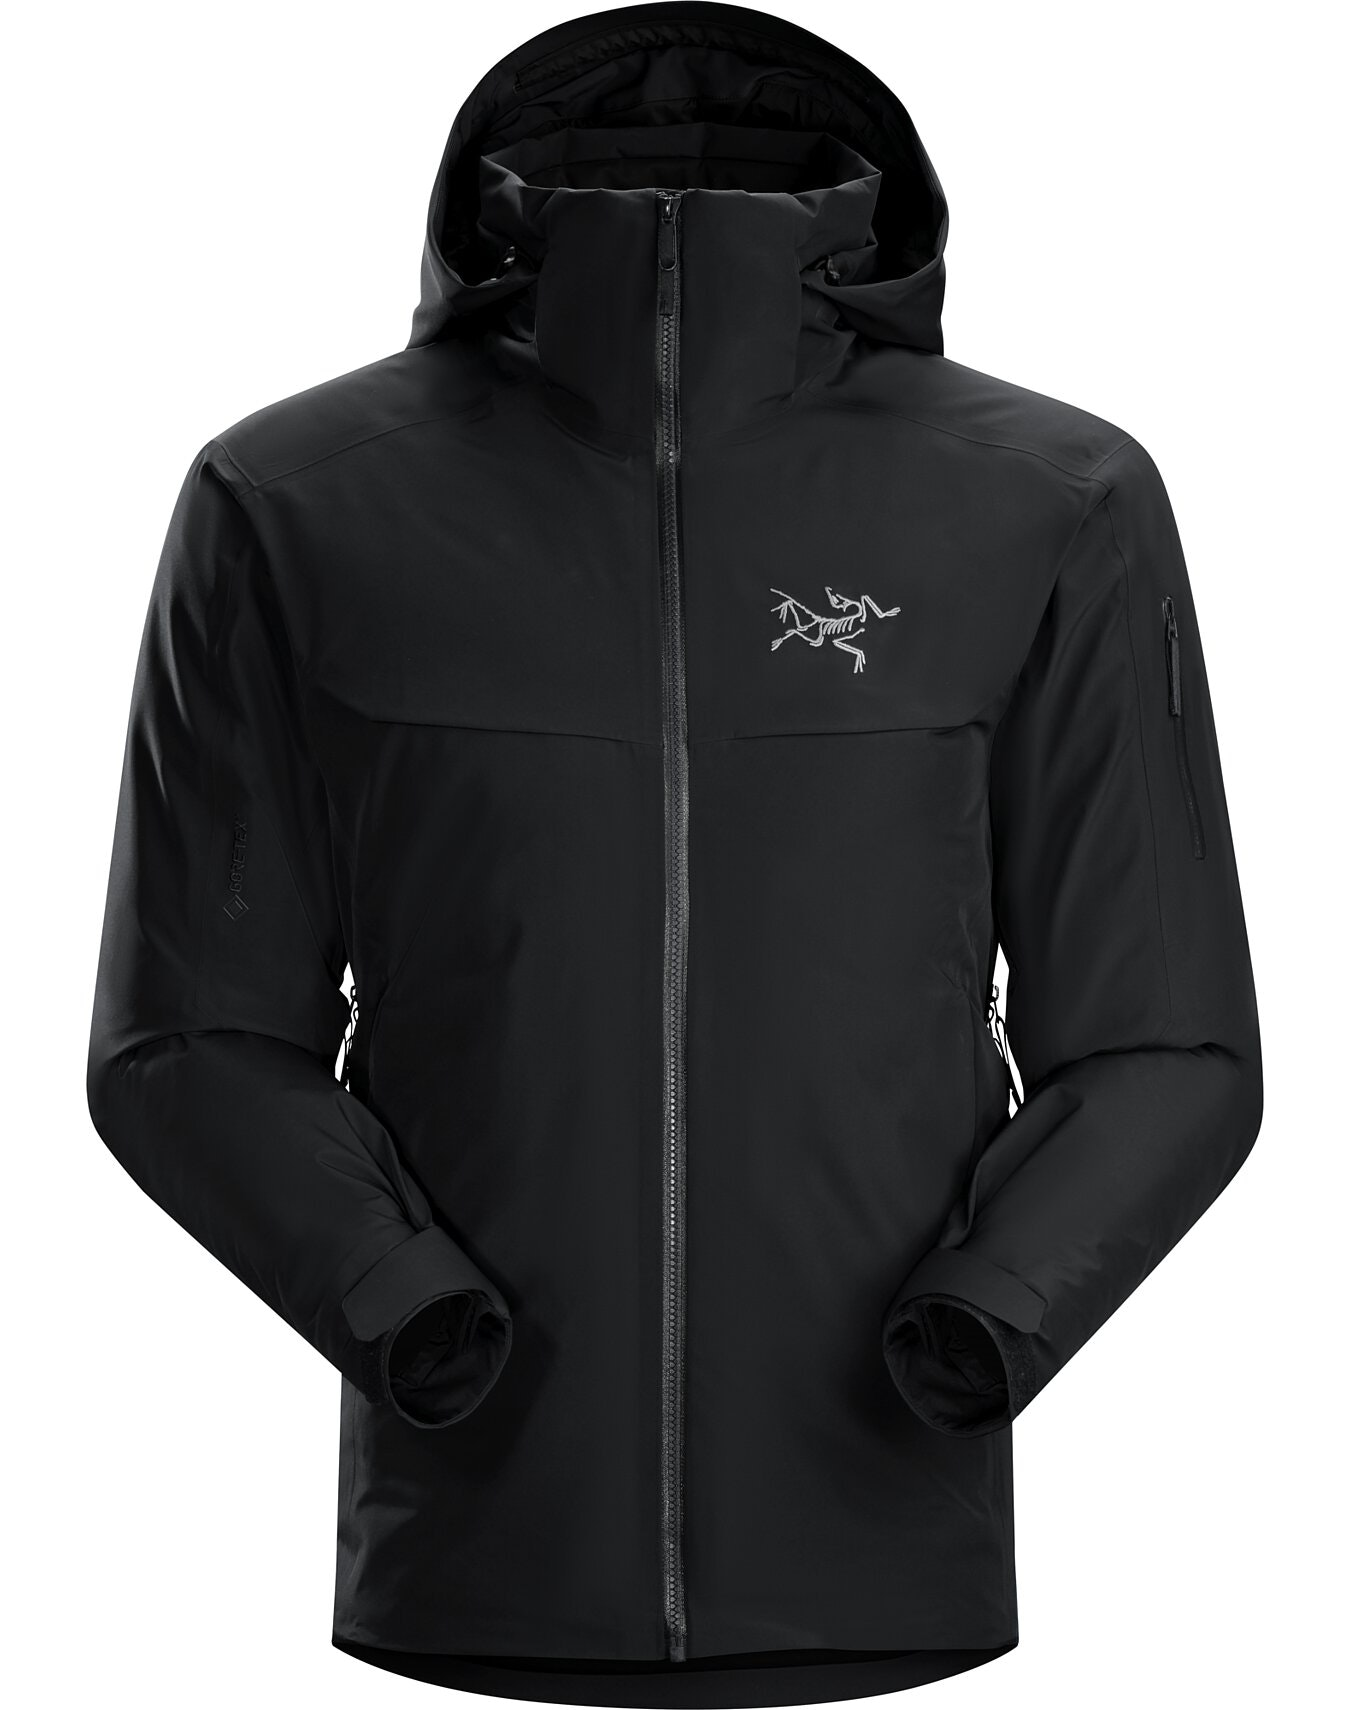 Affordable ski jackets for men from Outdoor Research